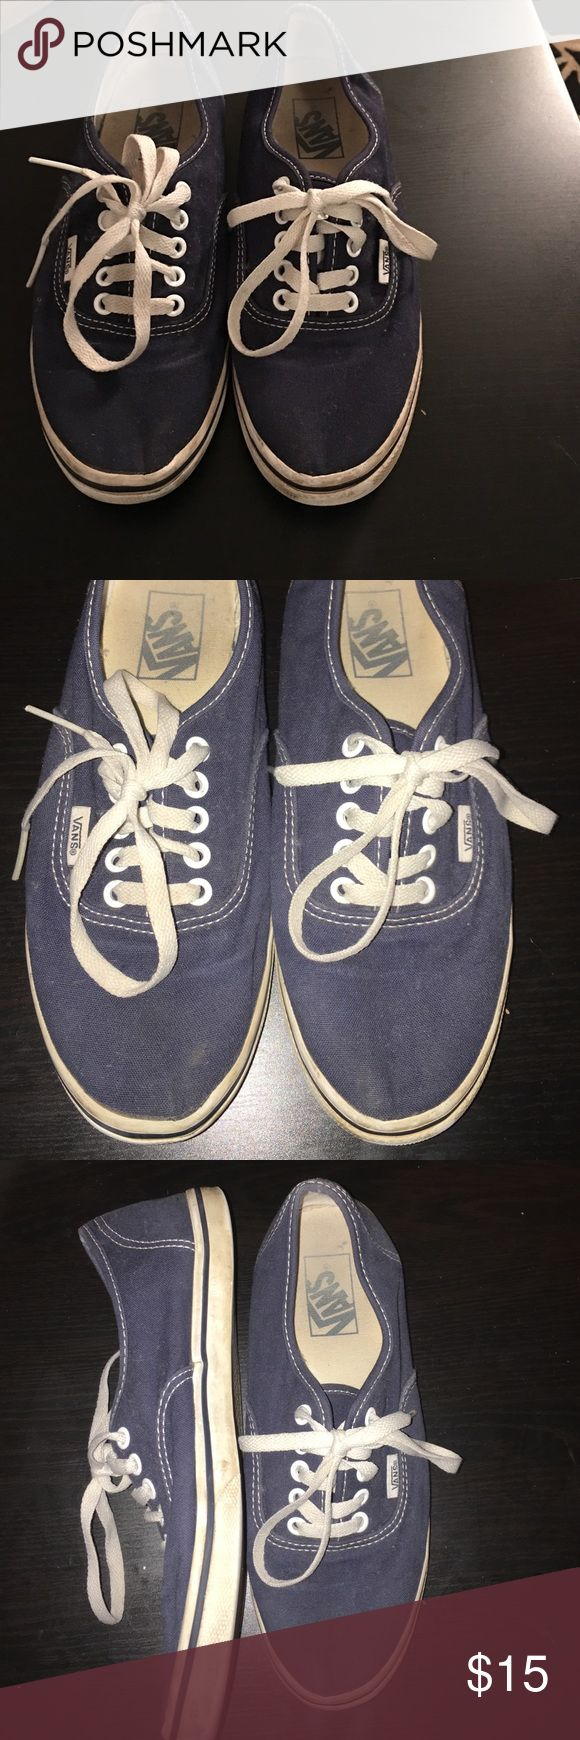 Navy blue vans Used but lots of life left - will be washed before shipped. Outer lining on the inside edge of the shoe is slightly detached (common among vans) - will sell to best offer Vans Shoes